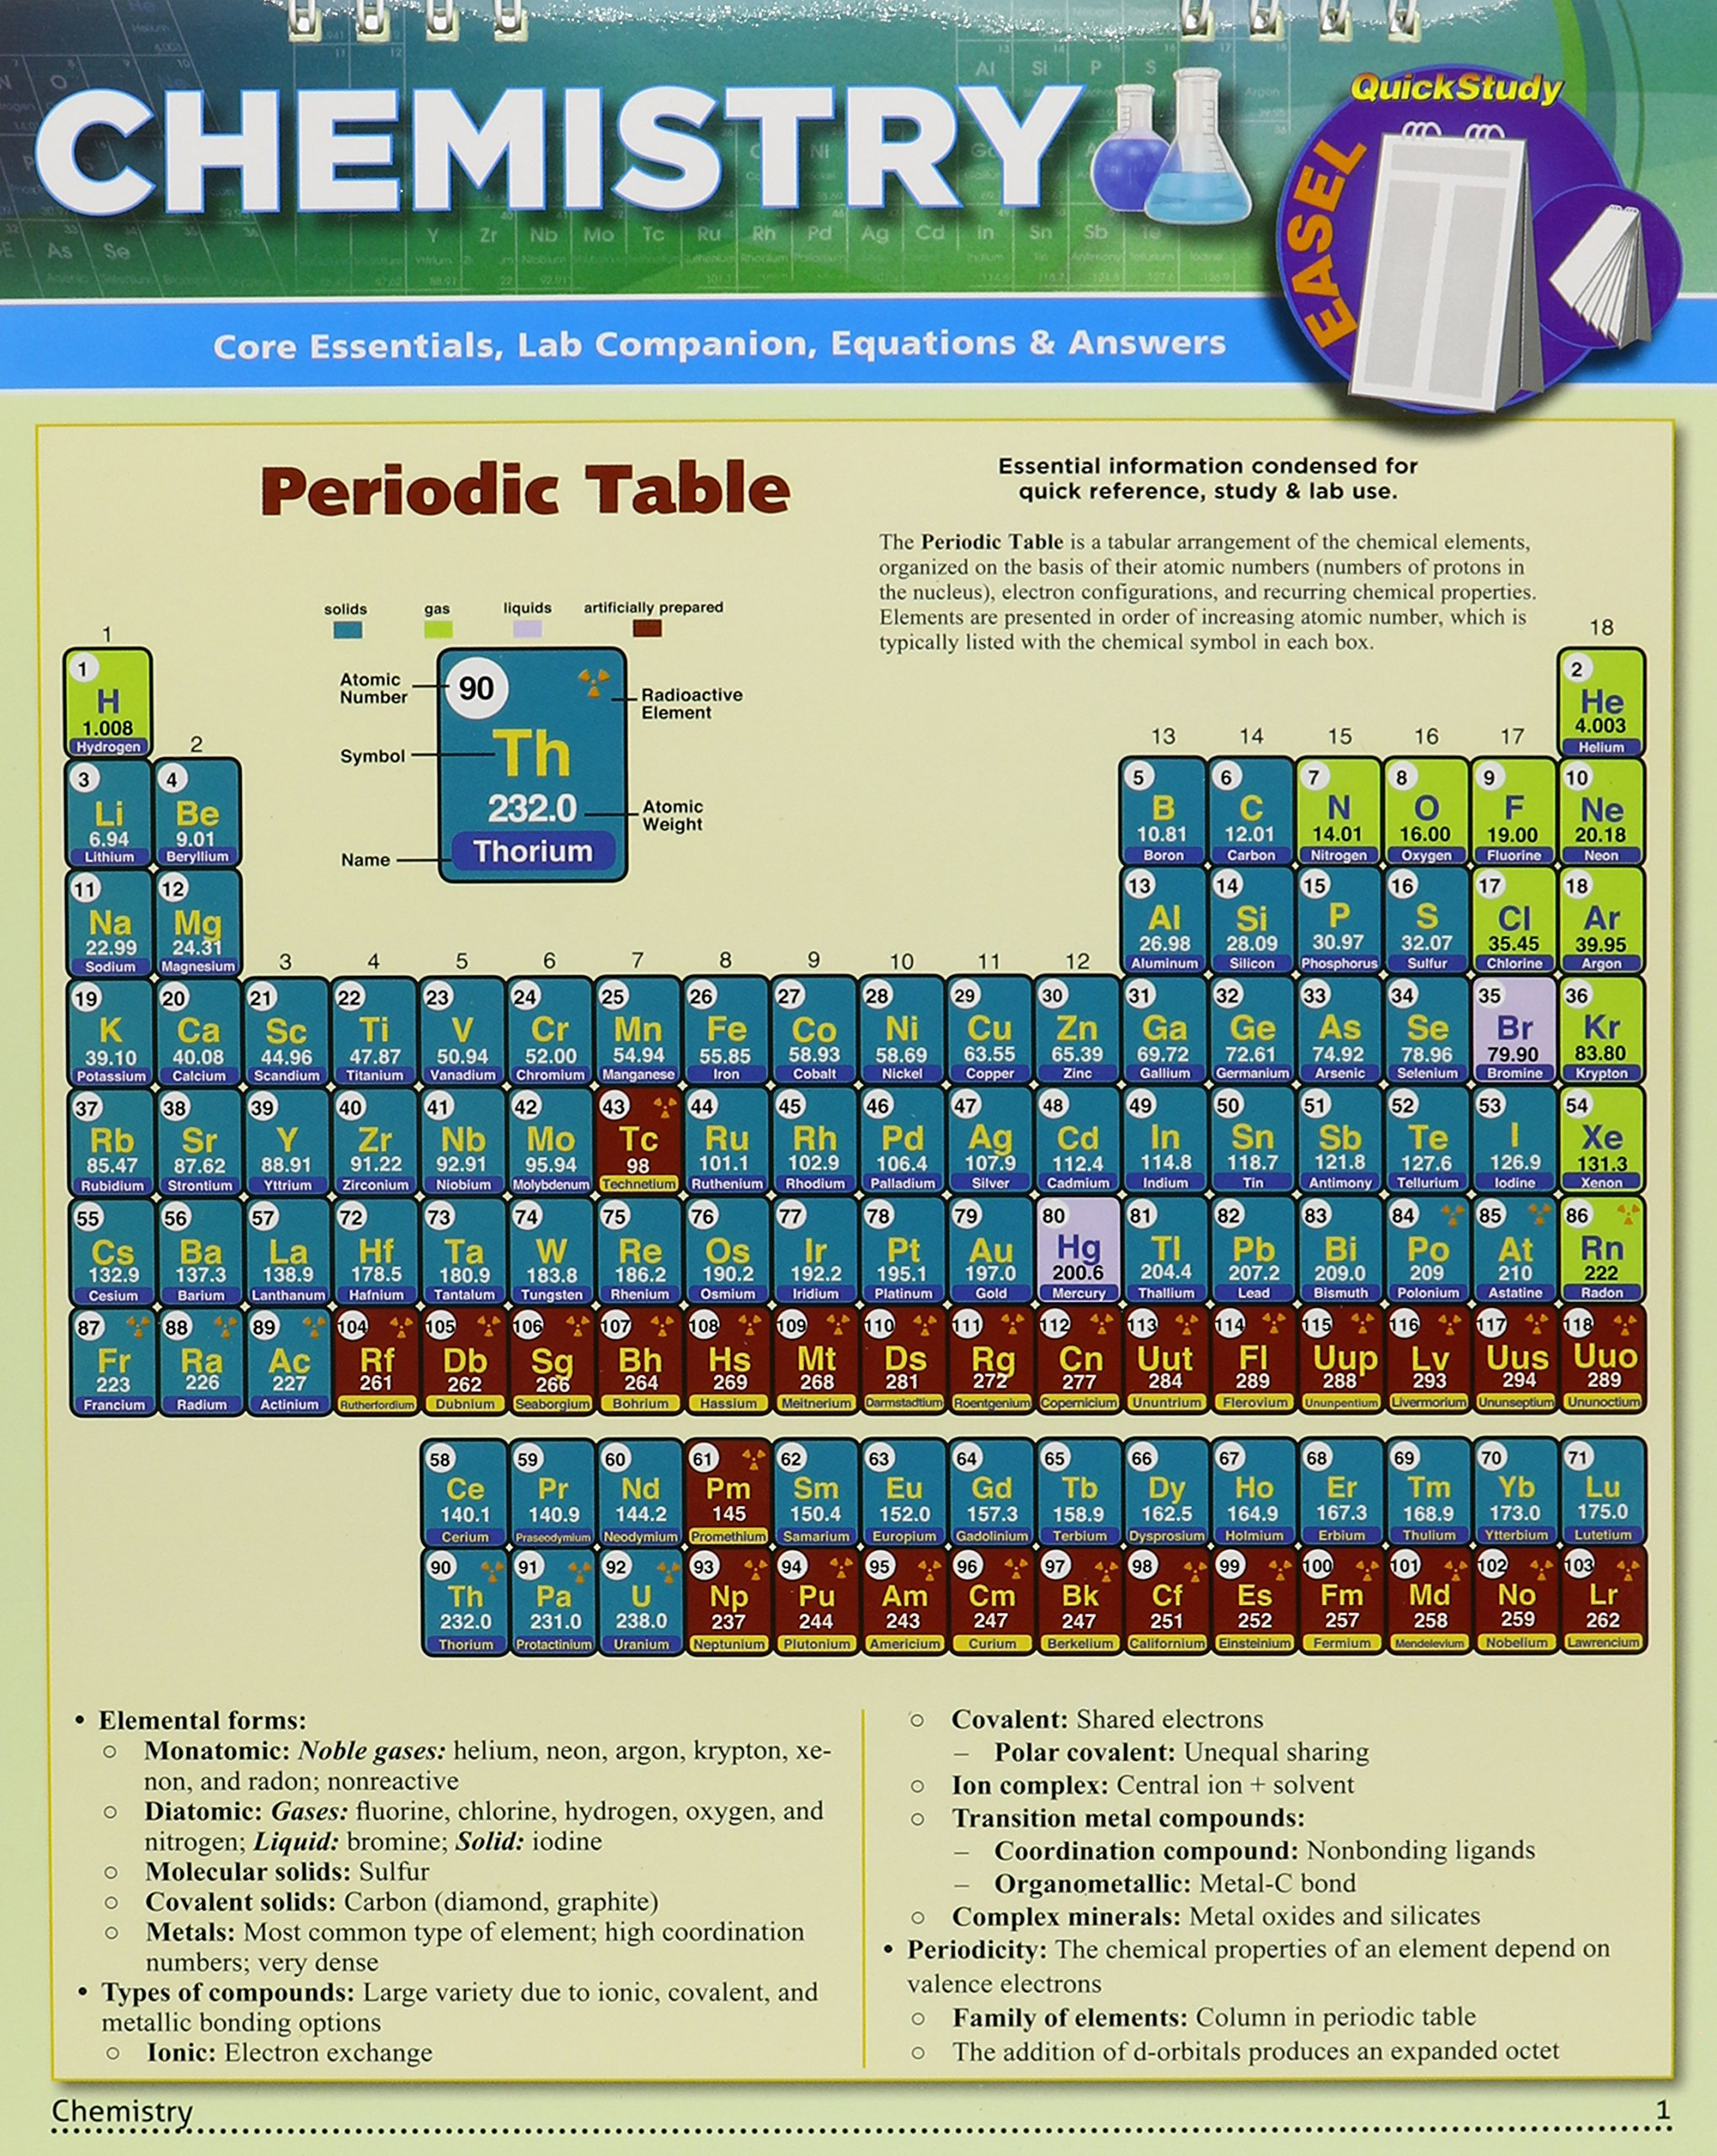 Graphite in periodic table images periodic table images buy chemistry book online at low prices in india chemistry buy chemistry book online at low gamestrikefo Choice Image